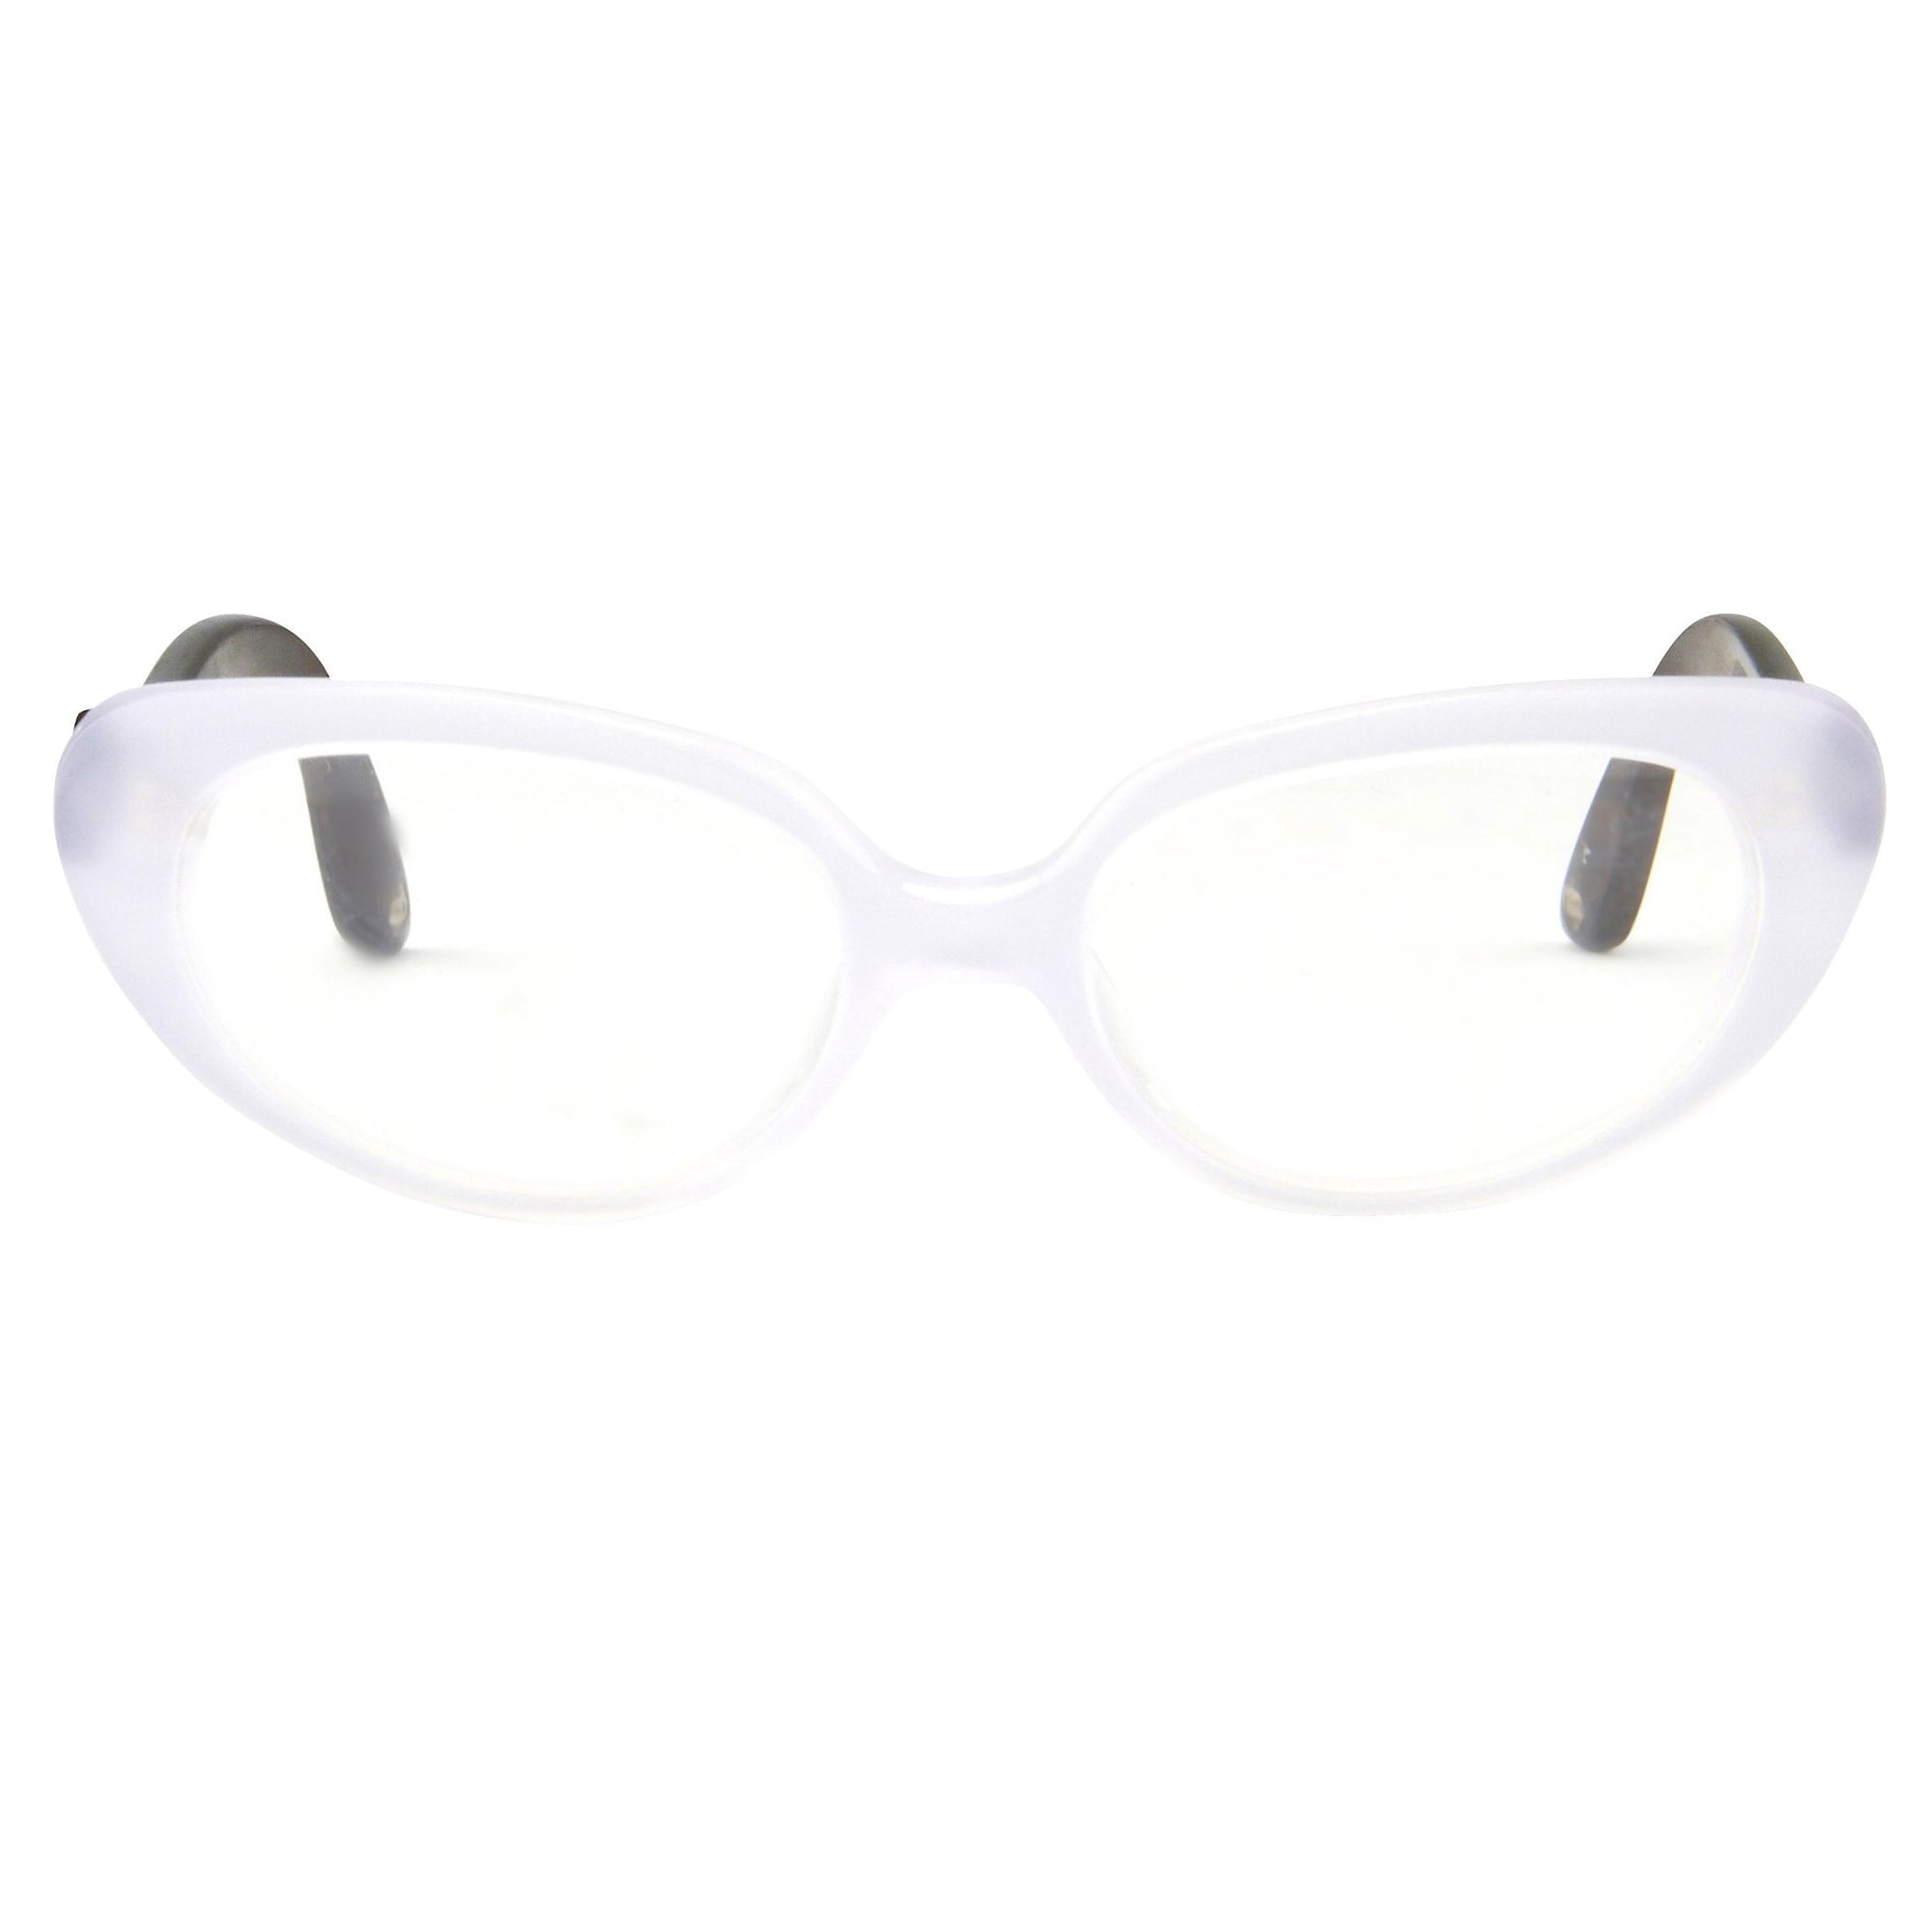 Oscar De La Renta Women Eyeglasses Sandalwood Cat Eye Ivory and Clear Lenses - ODLR43C3OPT - Watches & Crystals